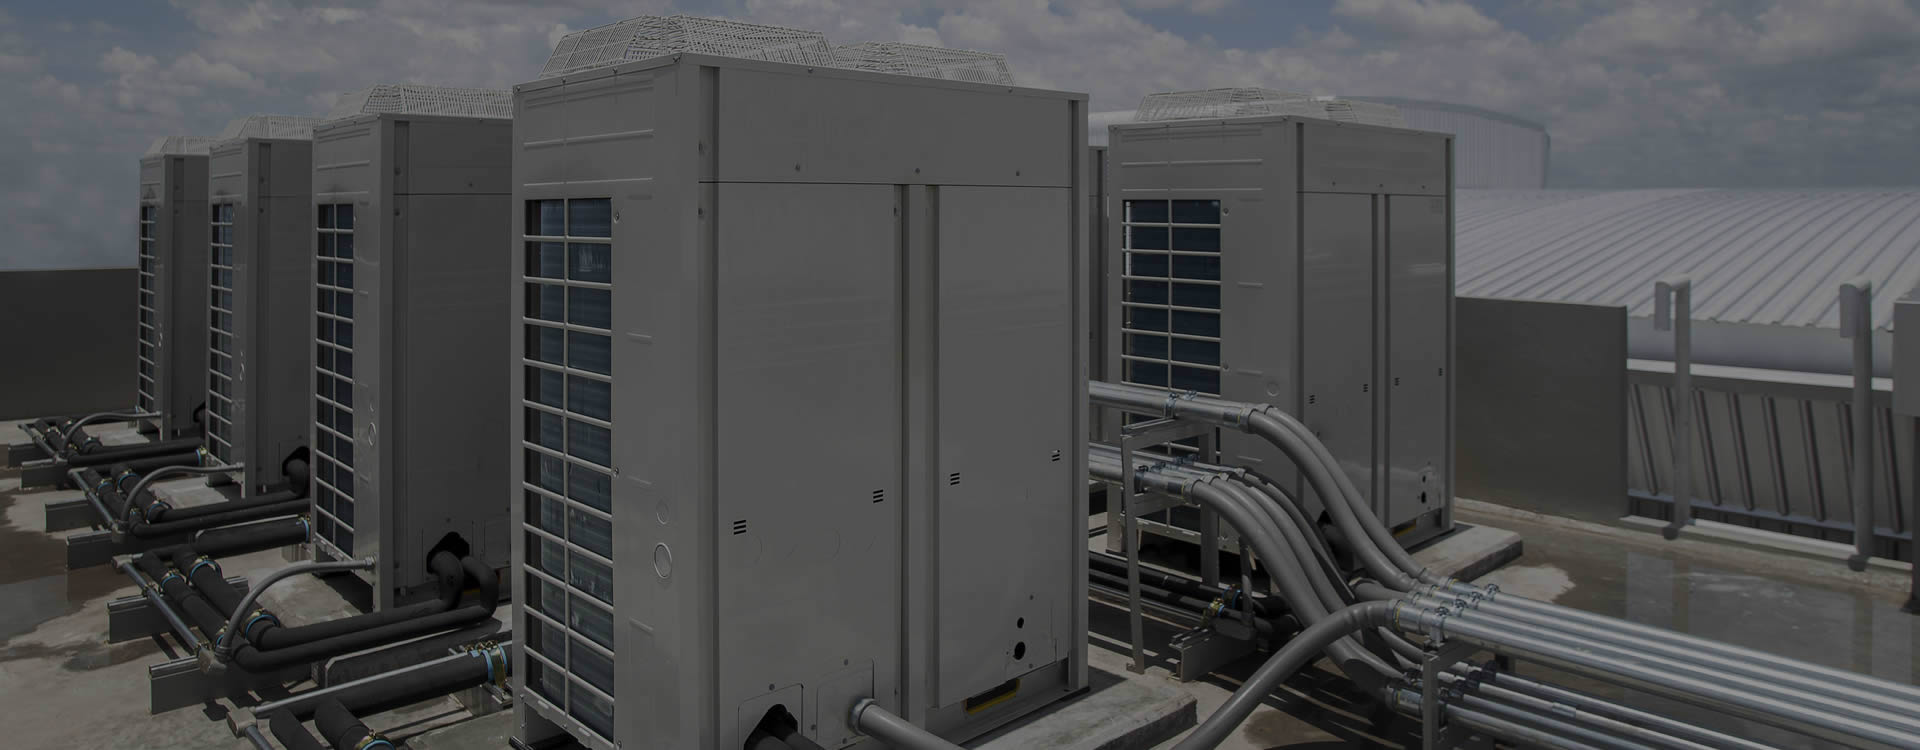 Genesis Refrigeration and HVAC LLC | Commercial HVAC Monroe WA